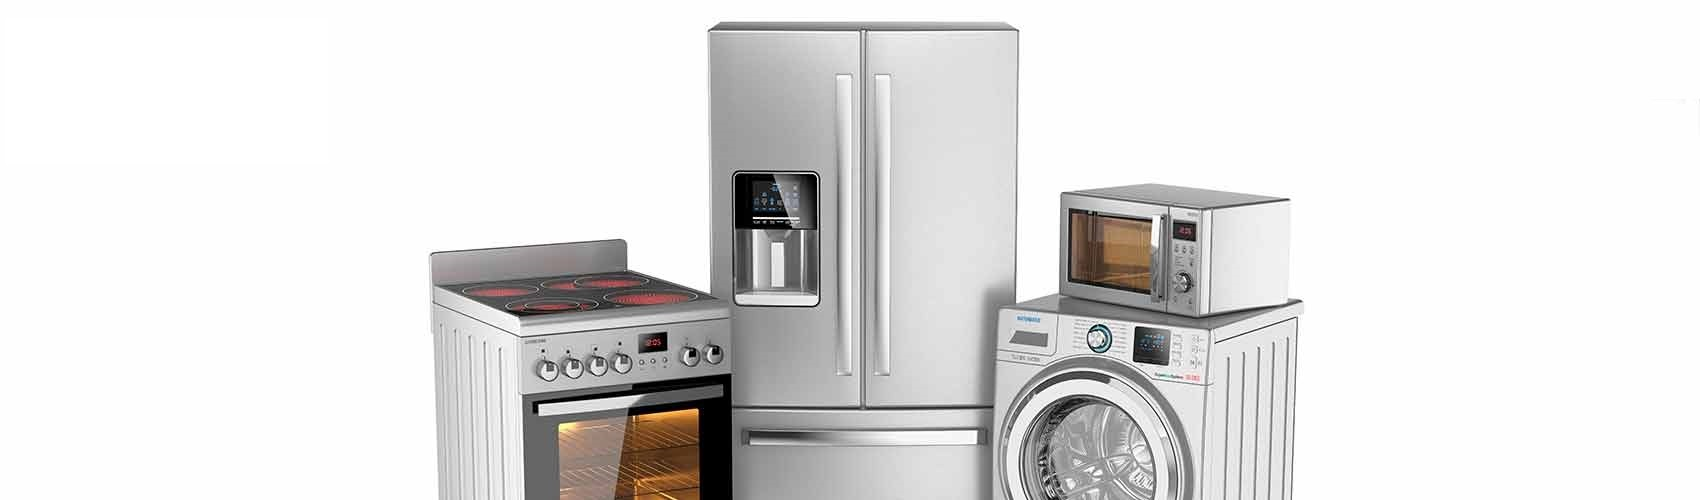 Appliance repairs in Queens